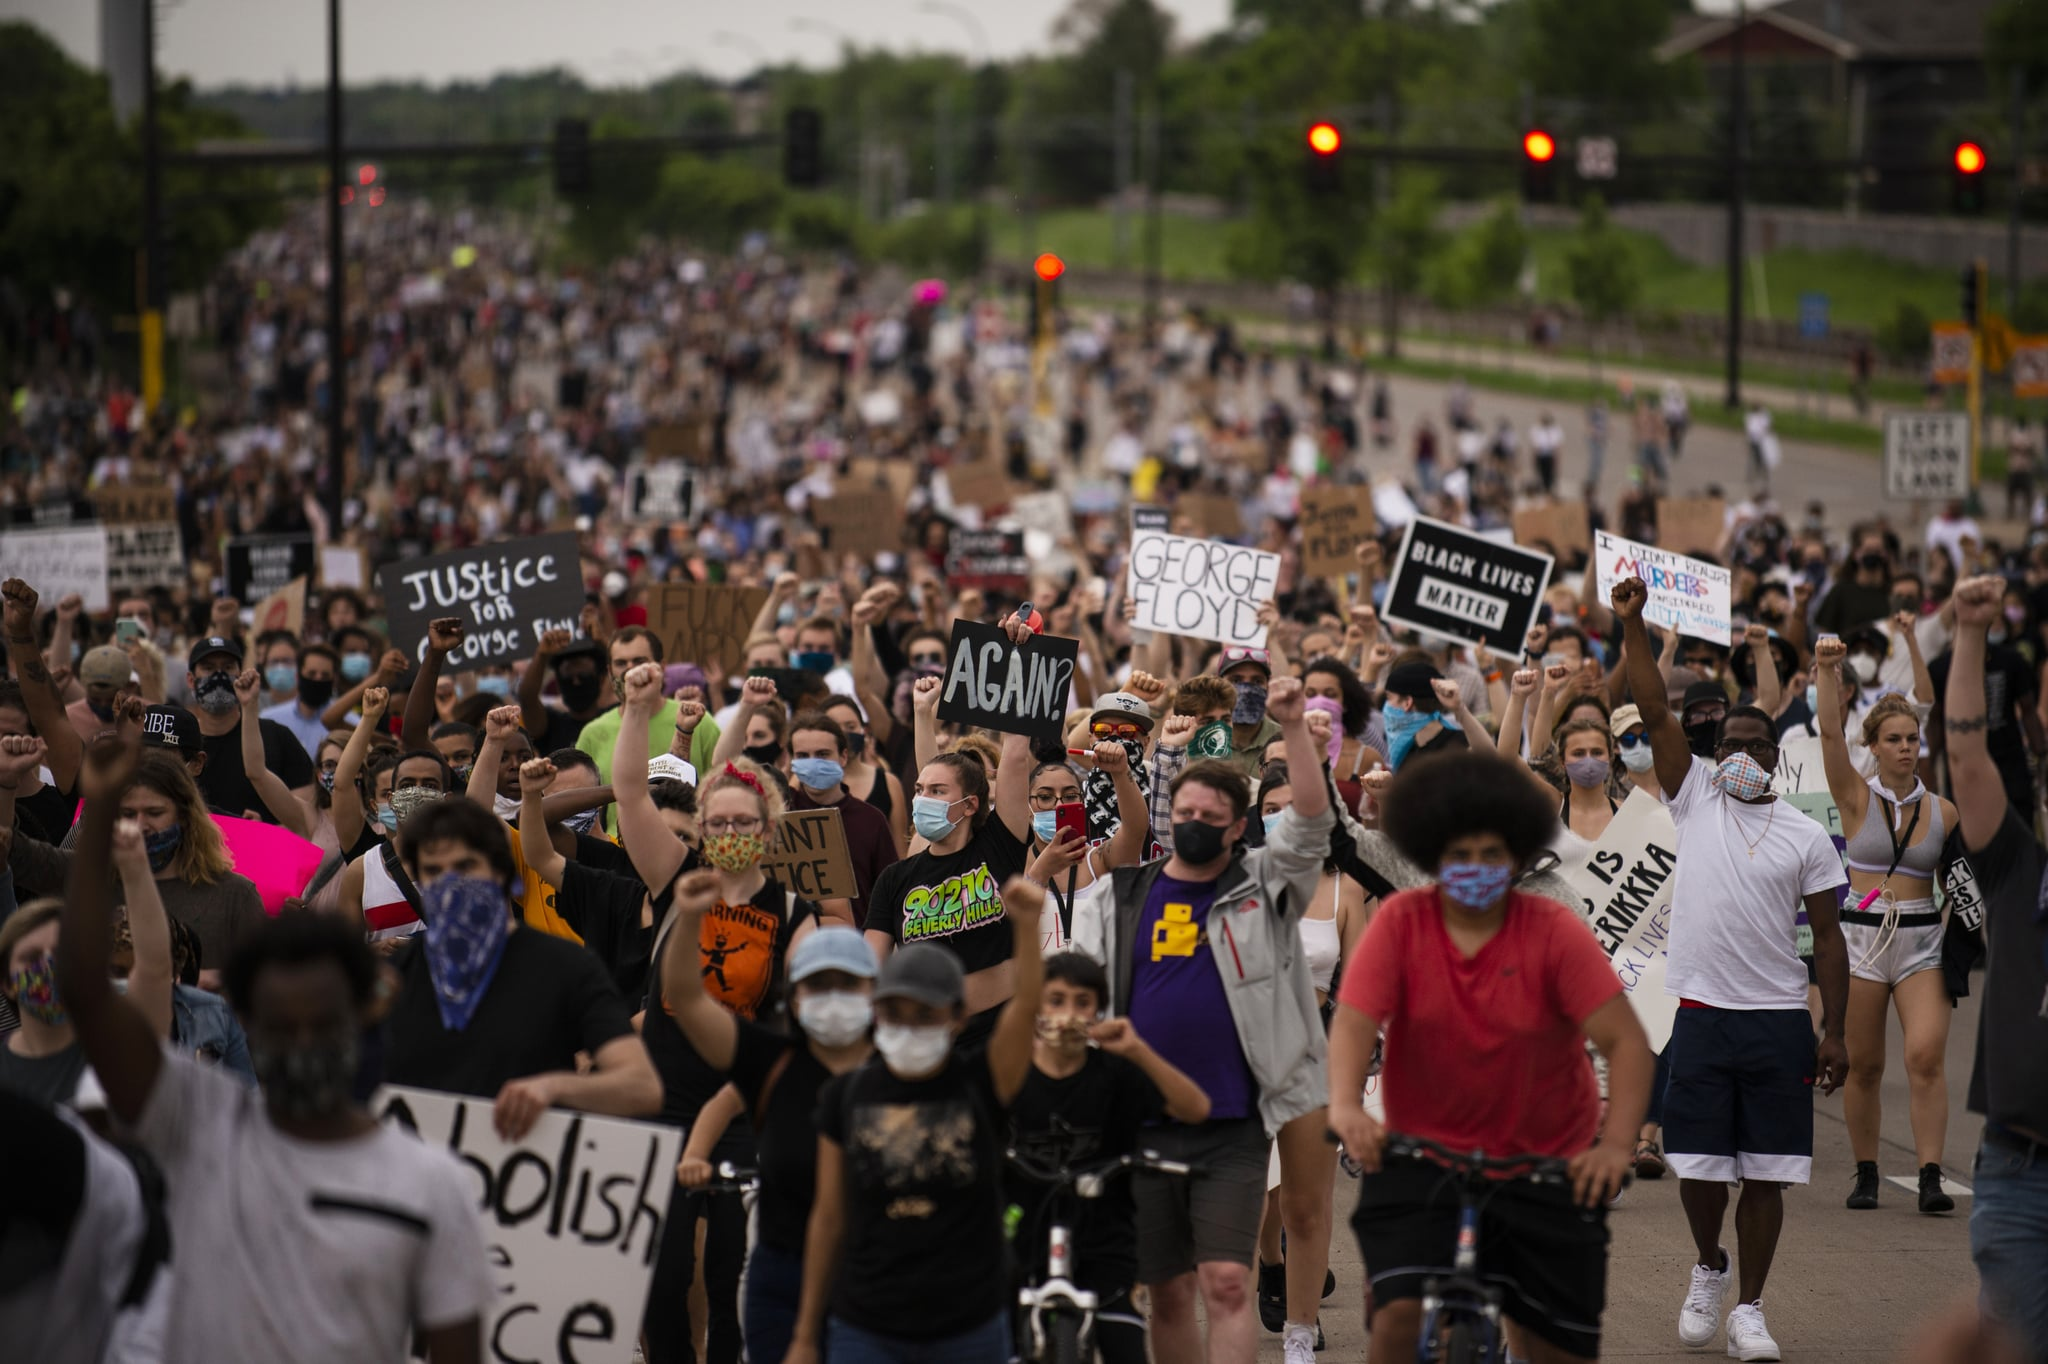 MINNEAPOLIS, MN - MAY 26: Protesters march on Hiawatha Avenue while decrying the killing of George Floyd on May 26, 2020 in Minneapolis, Minnesota. Four Minneapolis police officers have been fired after a video taken by a bystander was posted on social media showing Floyd's neck being pinned to the ground by an officer as he repeatedly said,